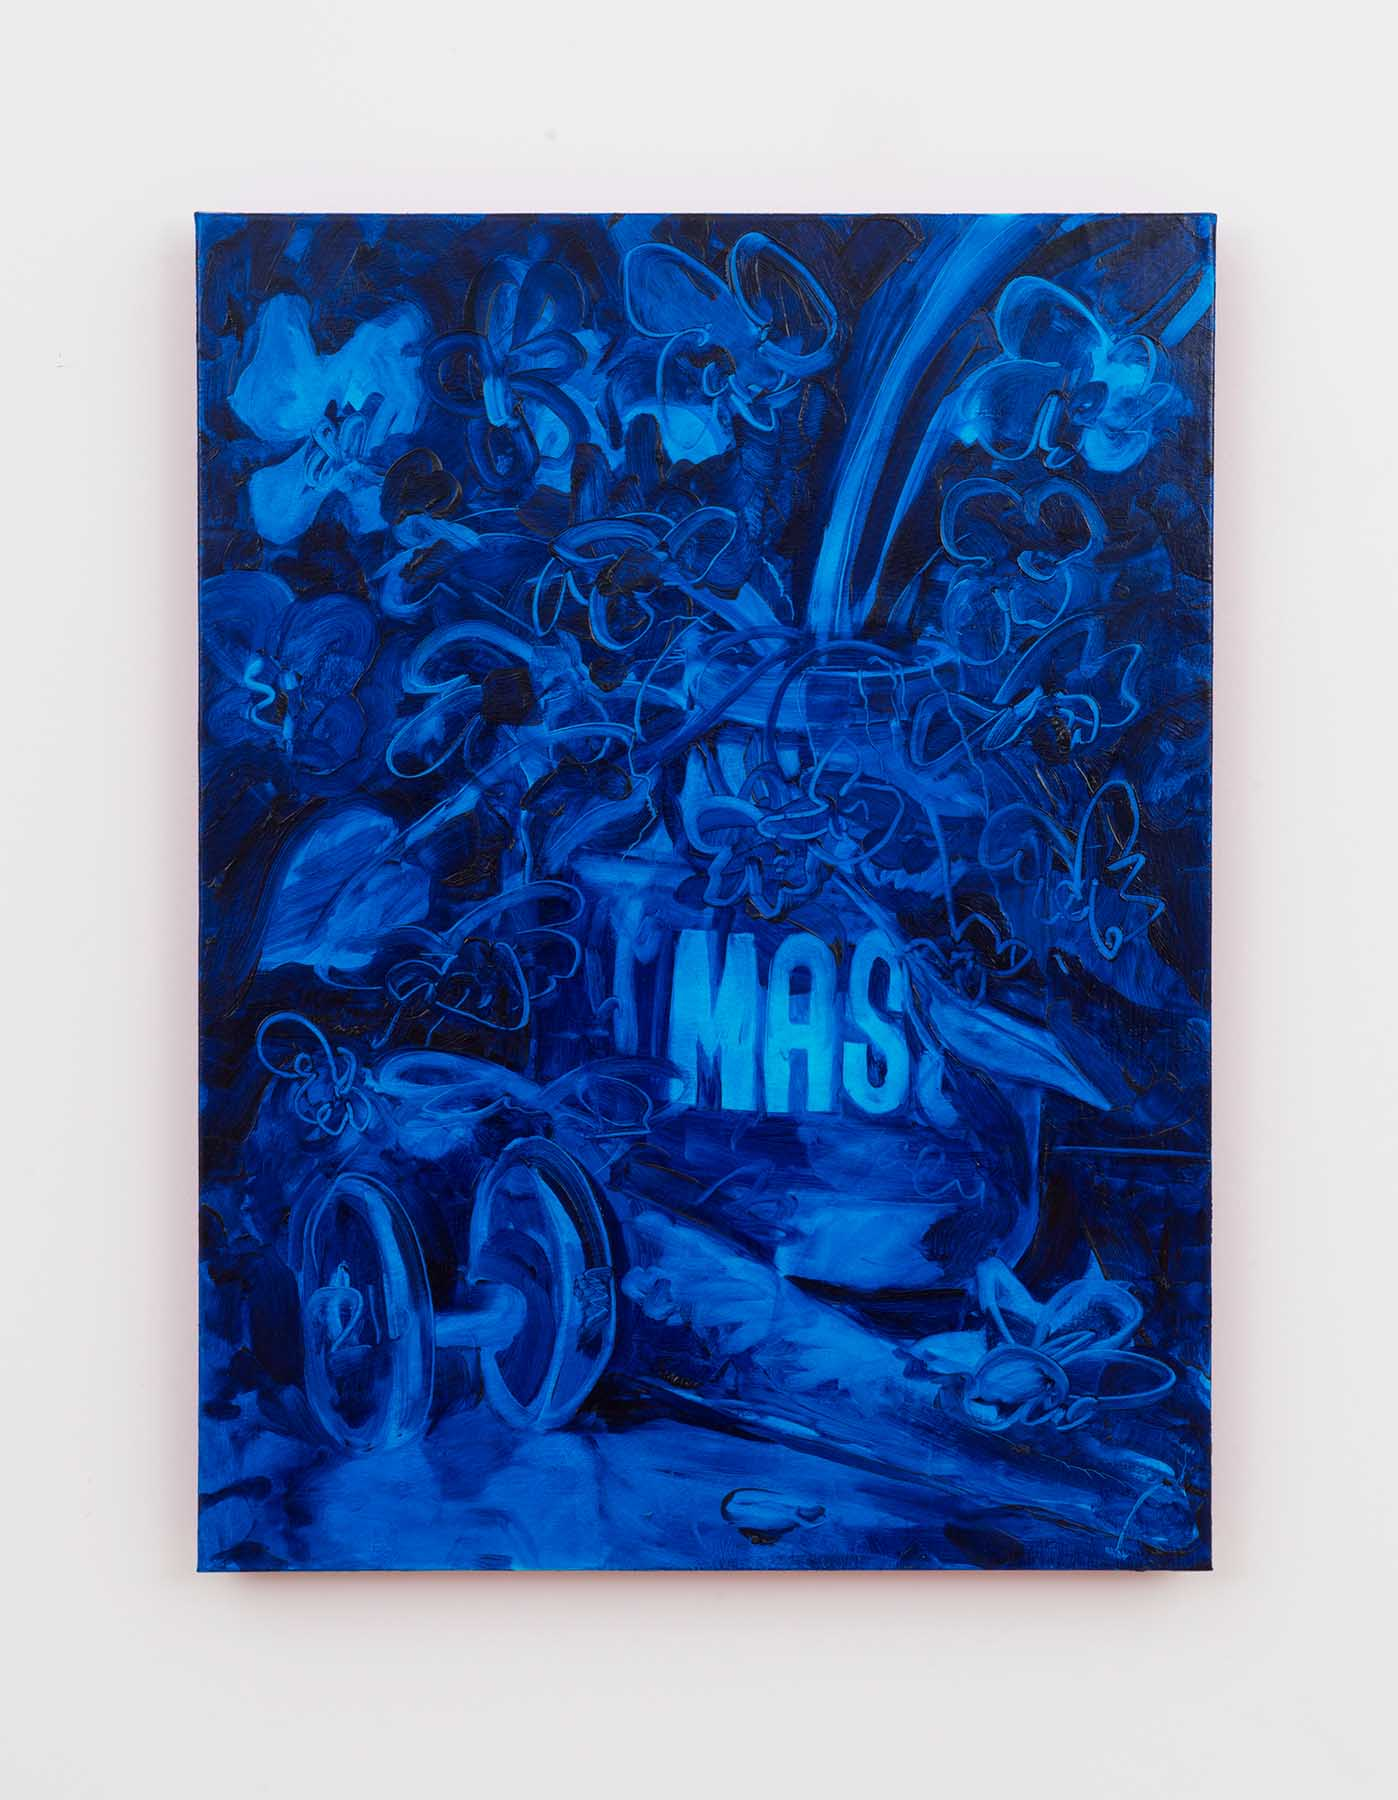 Amadeo Morelos, Club MASS, 2019, 18h x 24w in